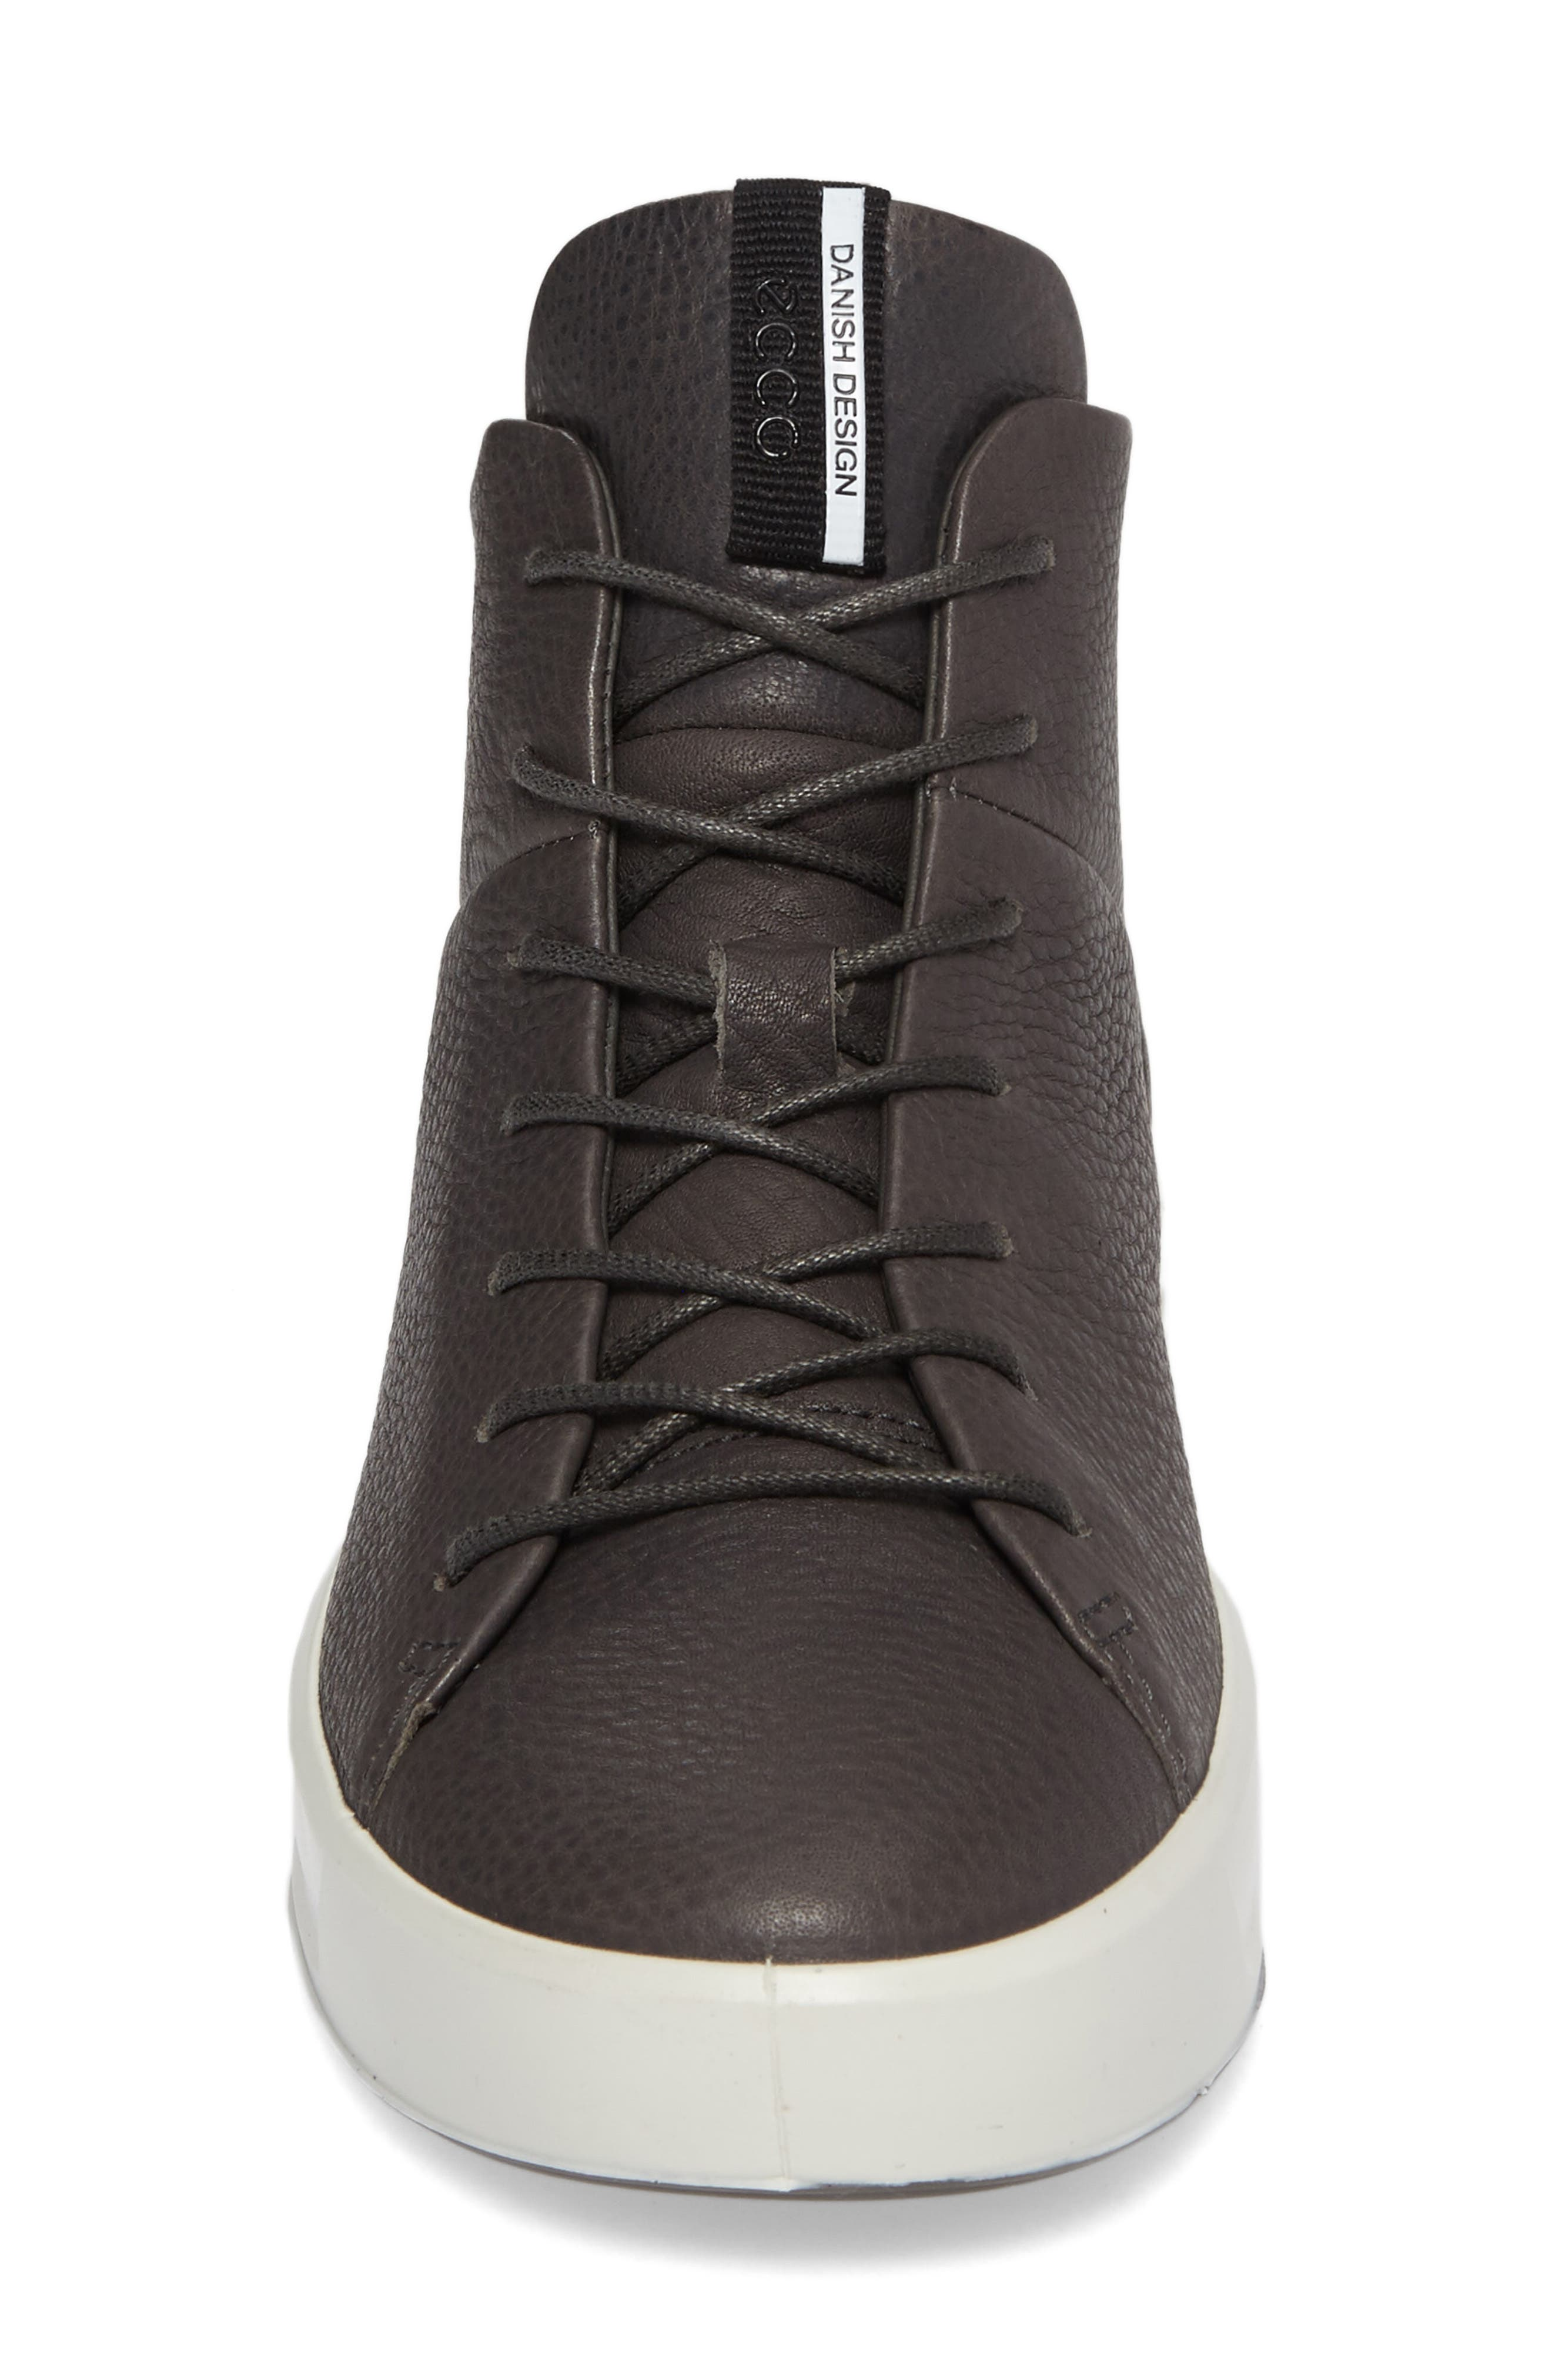 Soft 8 High Top Sneaker,                             Alternate thumbnail 4, color,                             Dark Shadow Leather